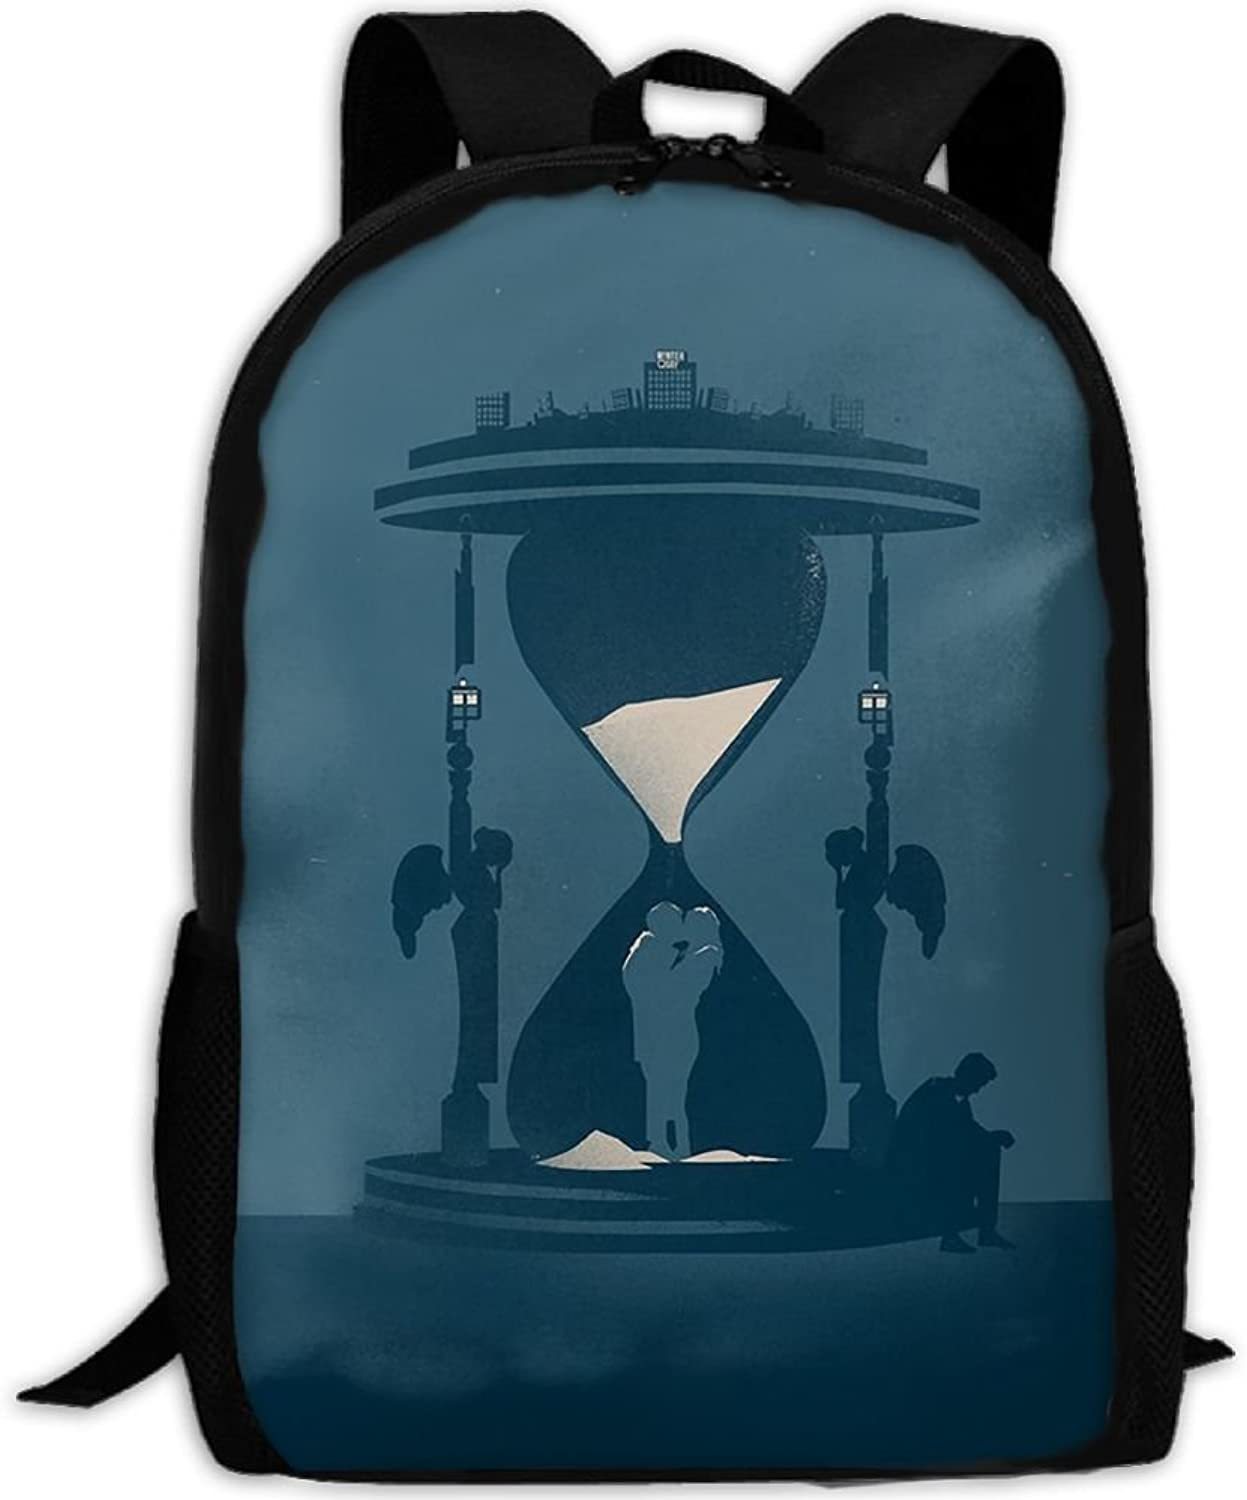 Adult Backpack Hourglass Kiss College Daypack Oxford Bag Unisex Business Travel Sports Bag with Adjustable Strap